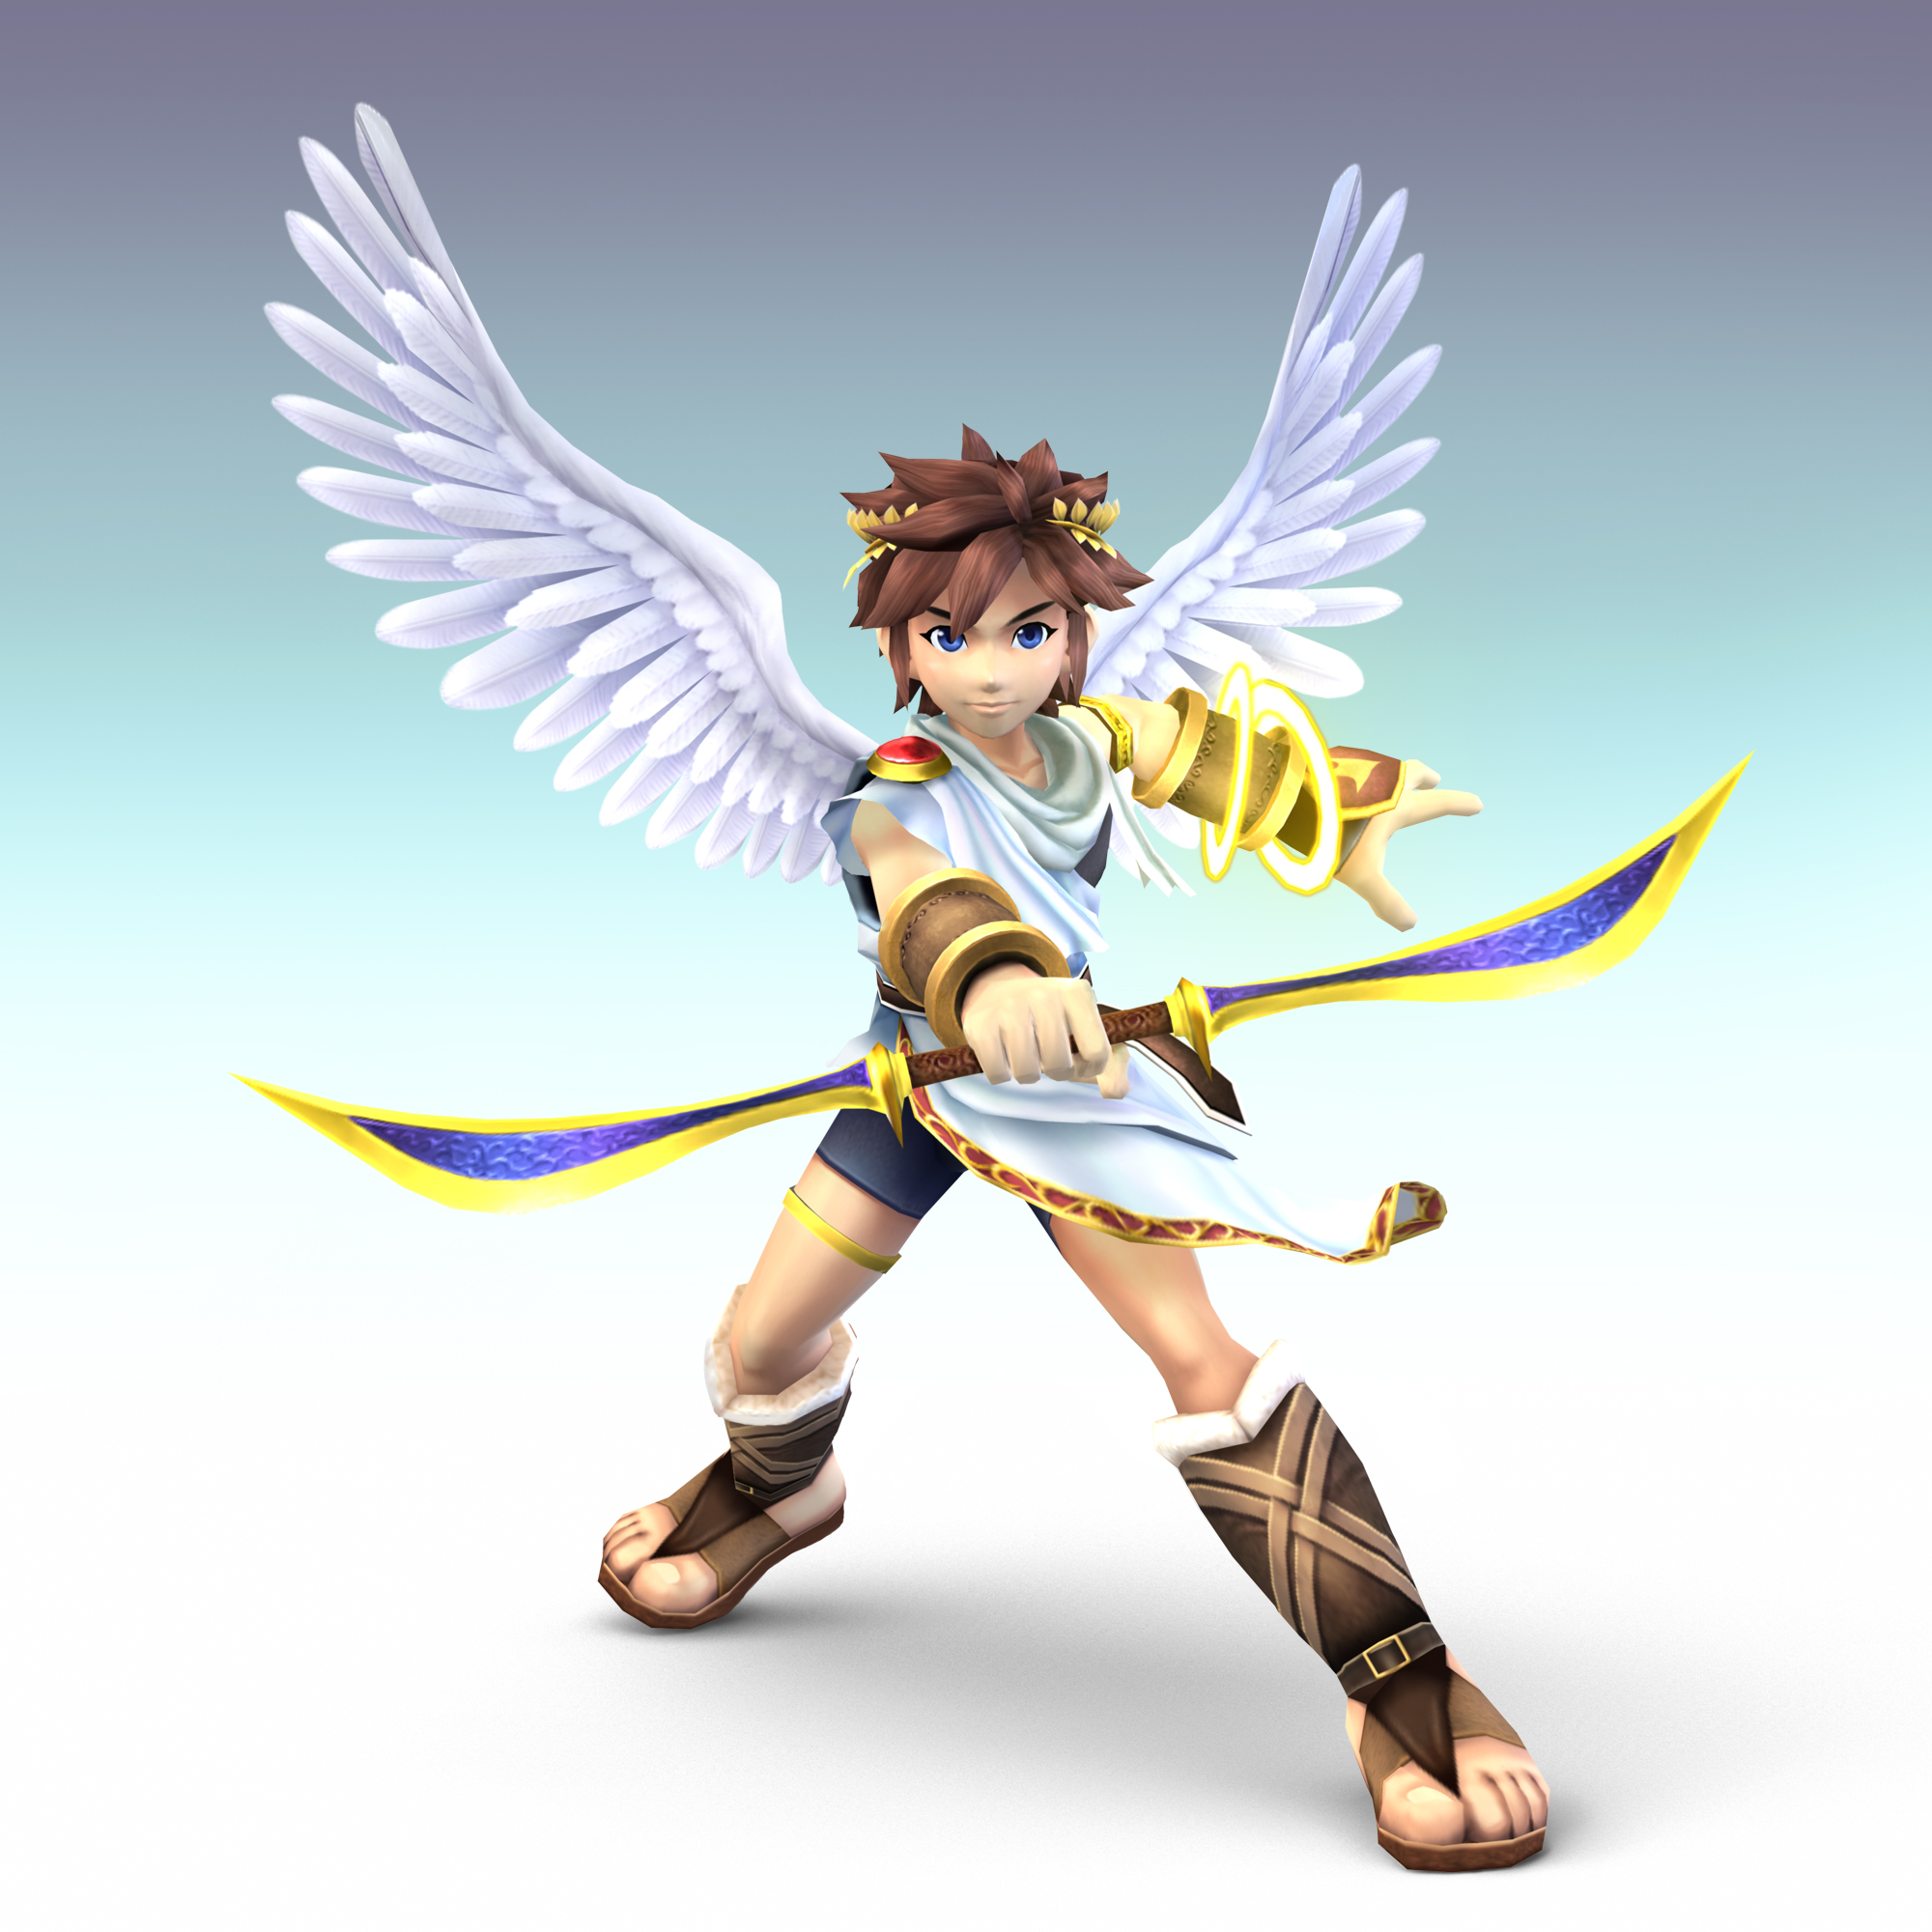 What Should Nintendo Do With The Kid Icarus Franchise